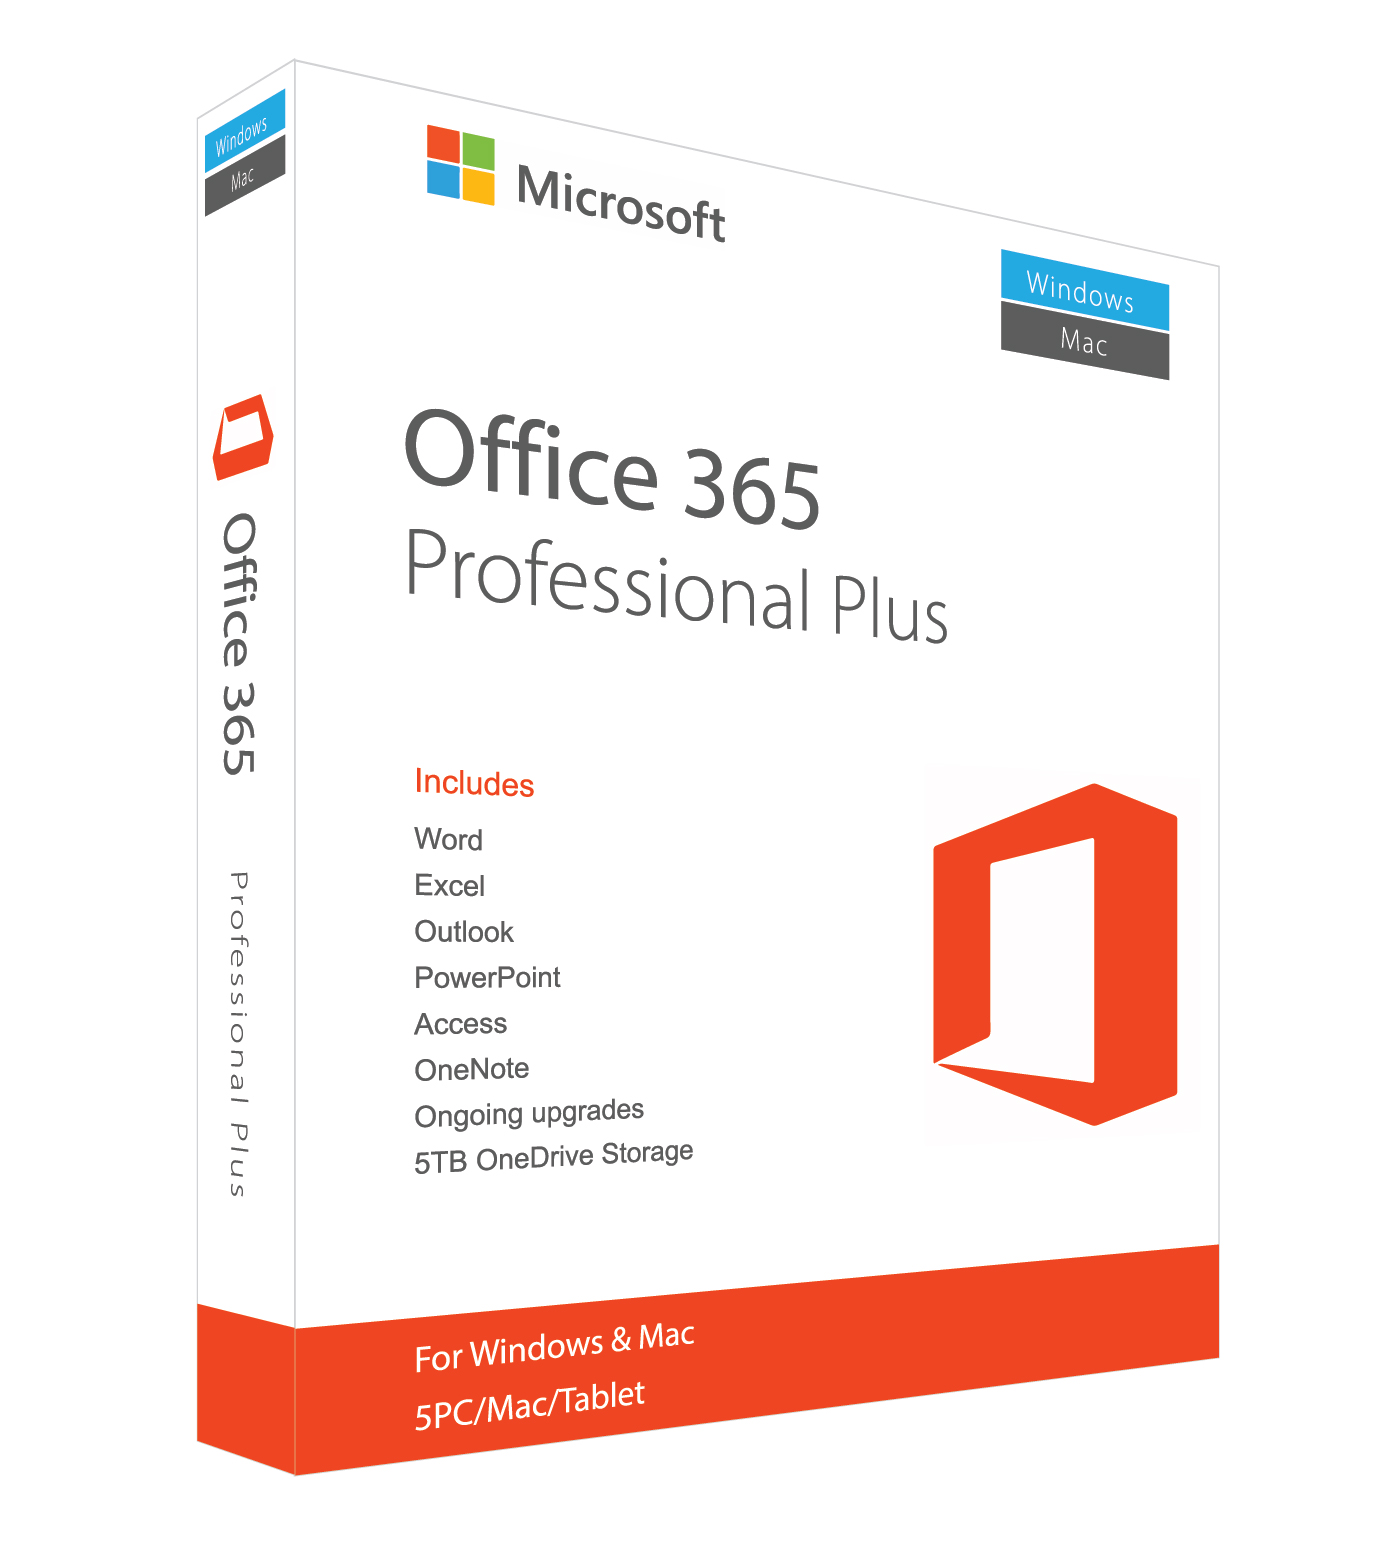 Microsoft Office 365 Pro Plus For Windows/MAC/Mobile (up to 5 People)Three Years Subscription